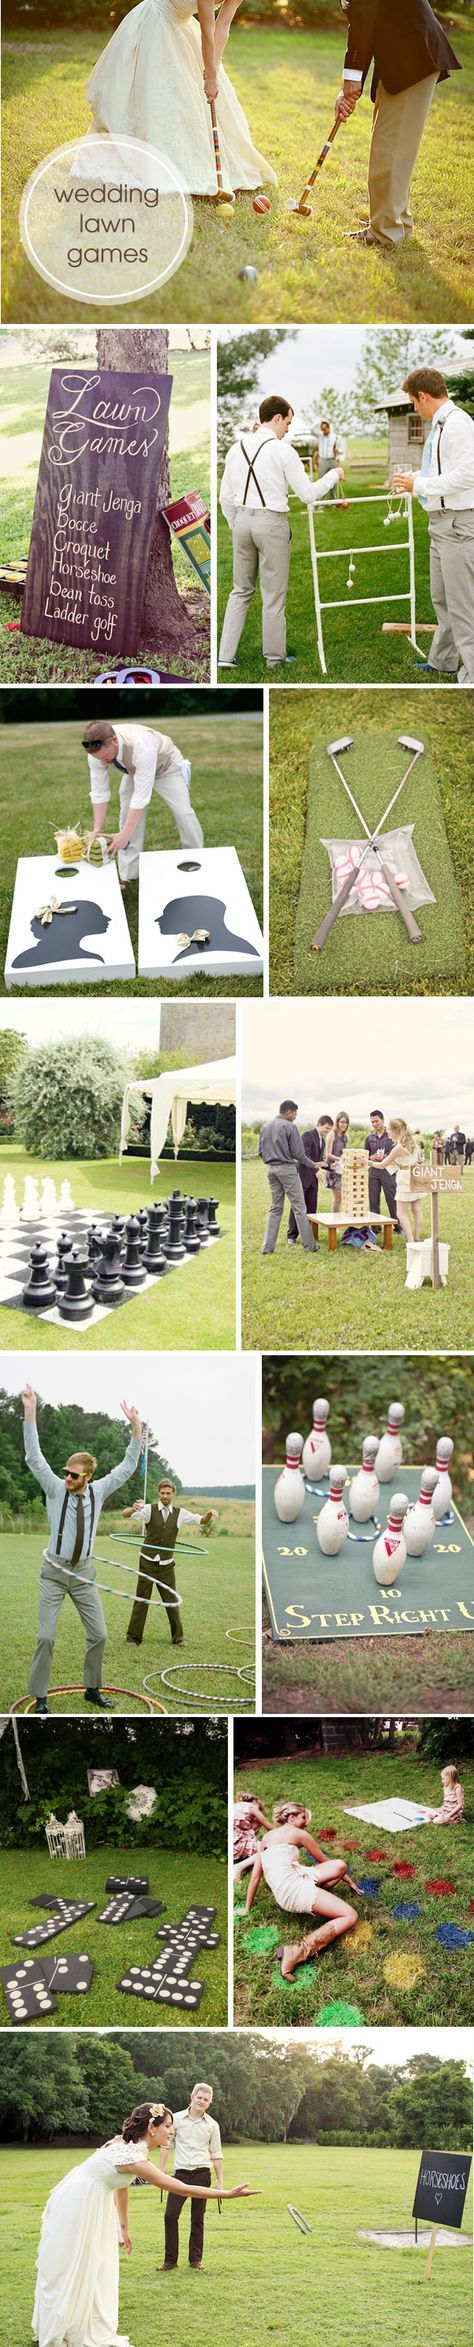 Round-up of super fun and unique wedding lawn games! I think giant Jenga might be my fav!!! #diywedding #weddinggames